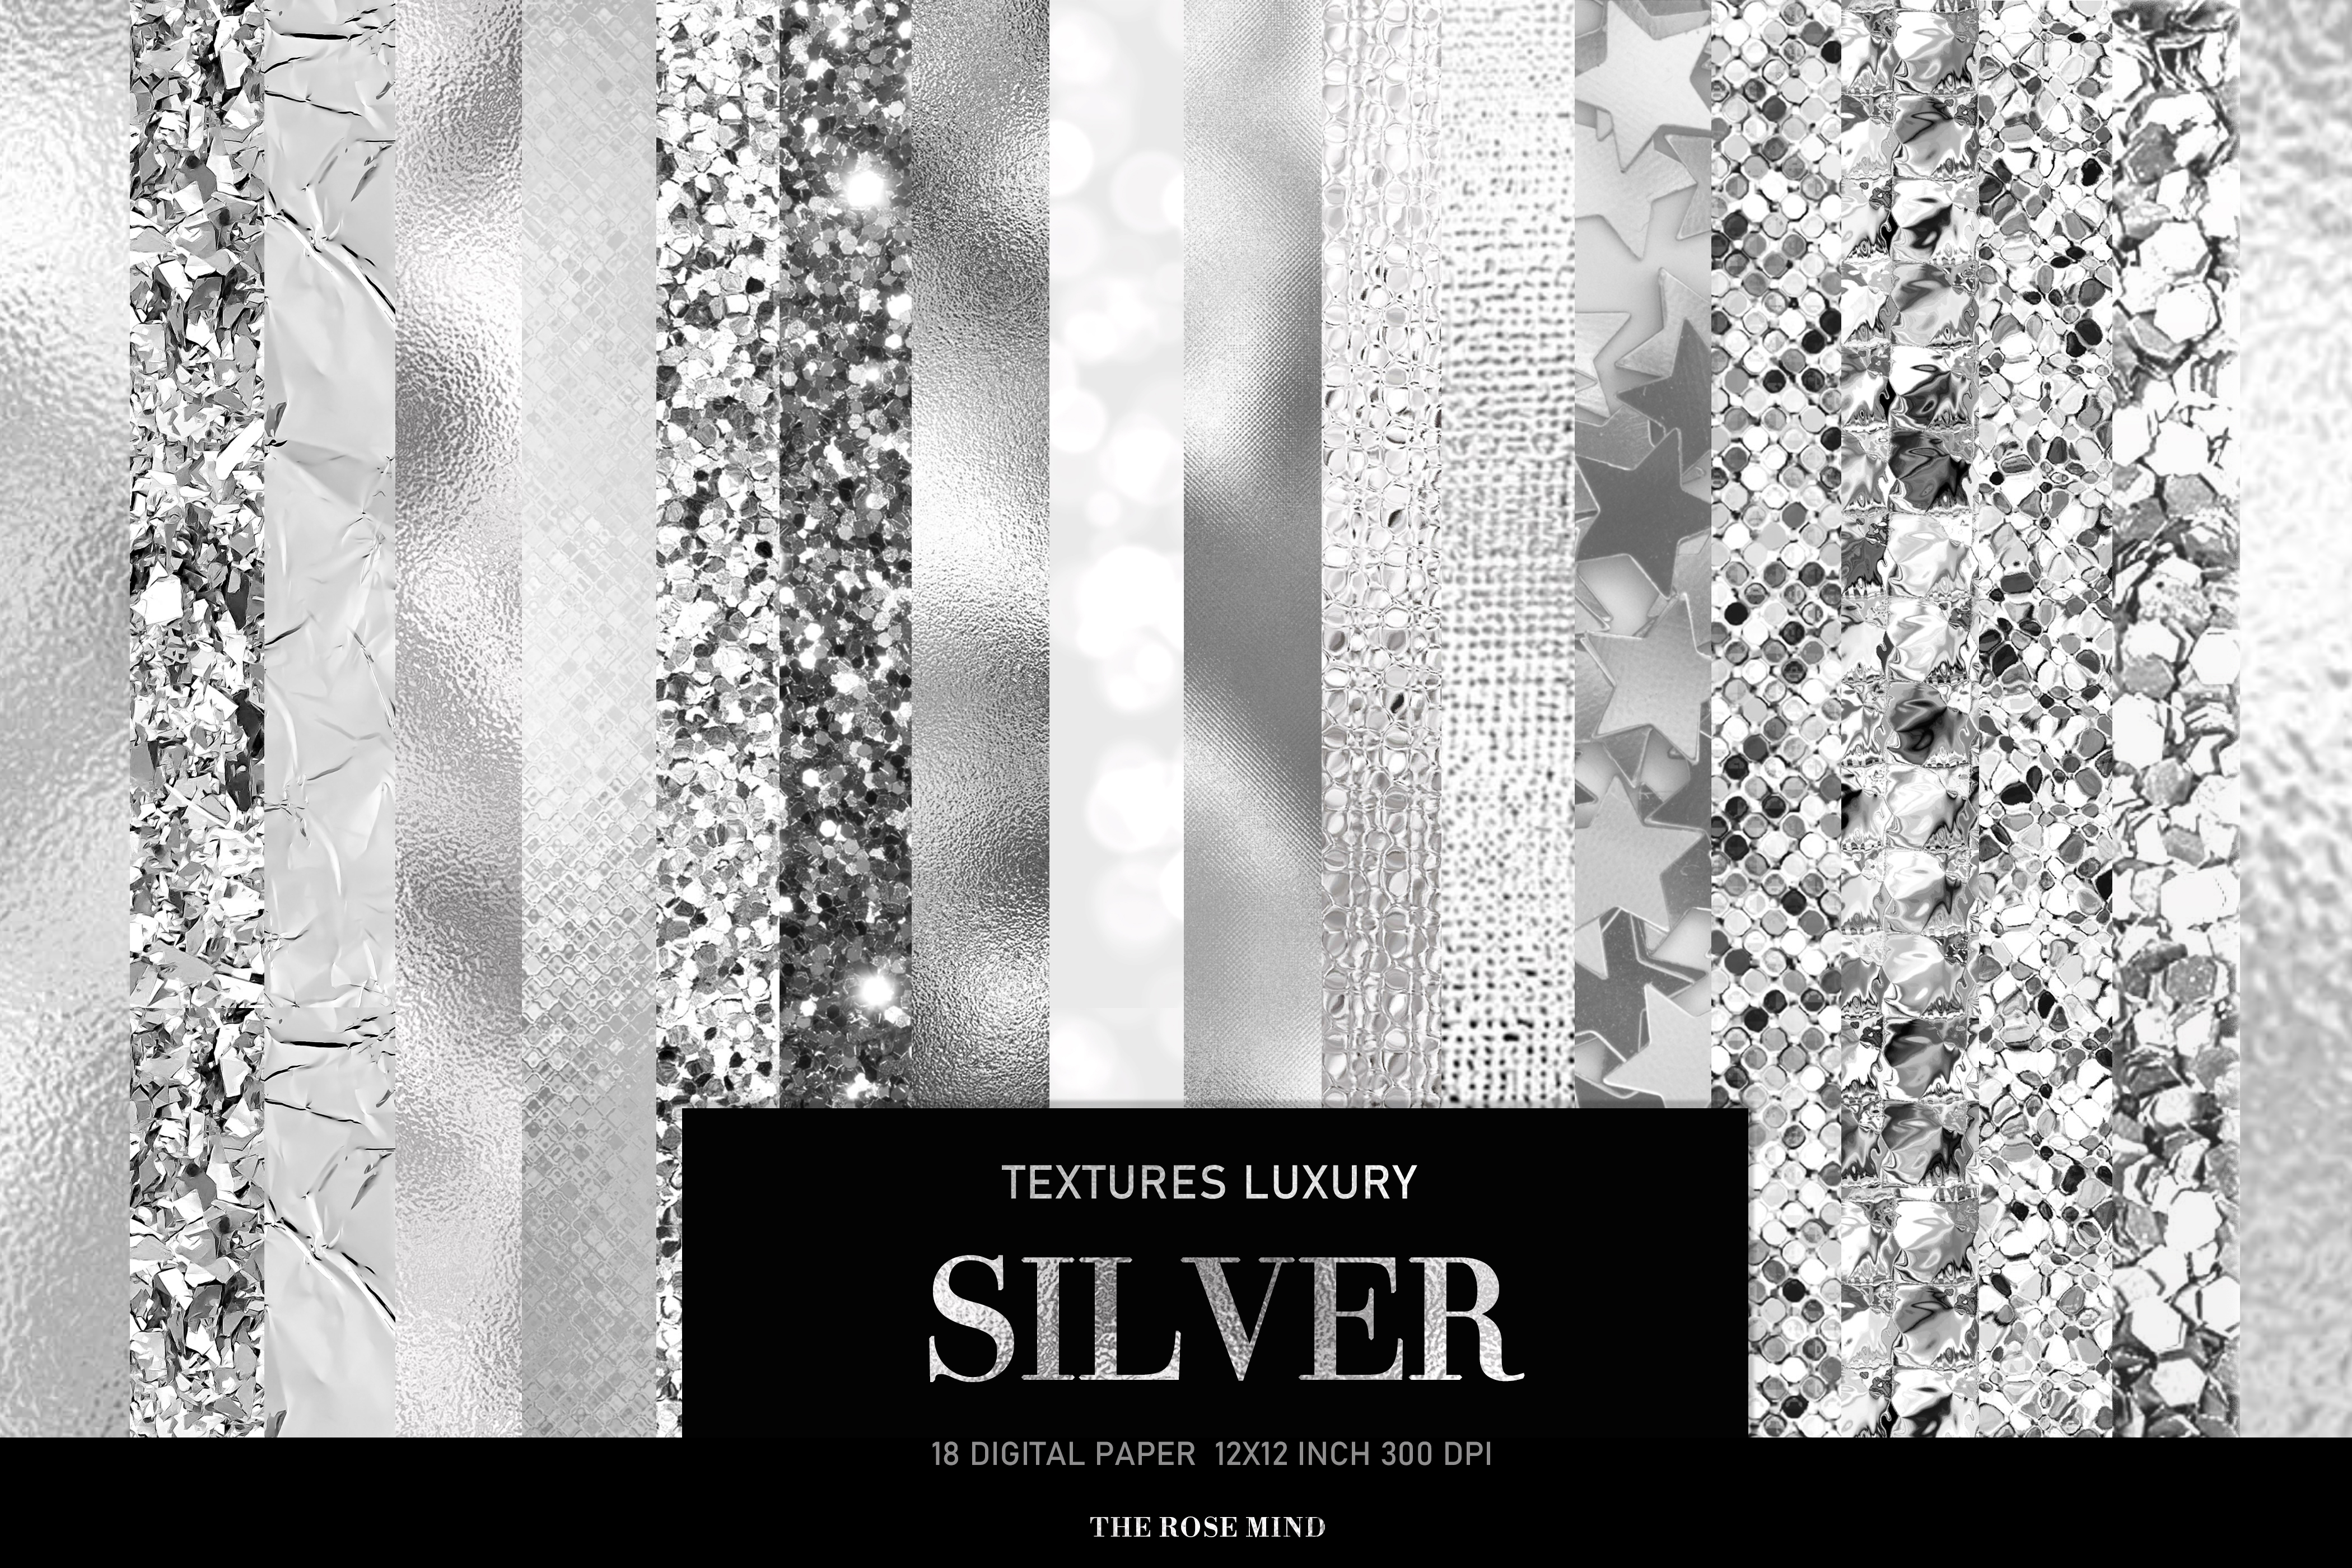 Download Free Silver Digital Paper Silver Foil Graphic By Therosemind for Cricut Explore, Silhouette and other cutting machines.